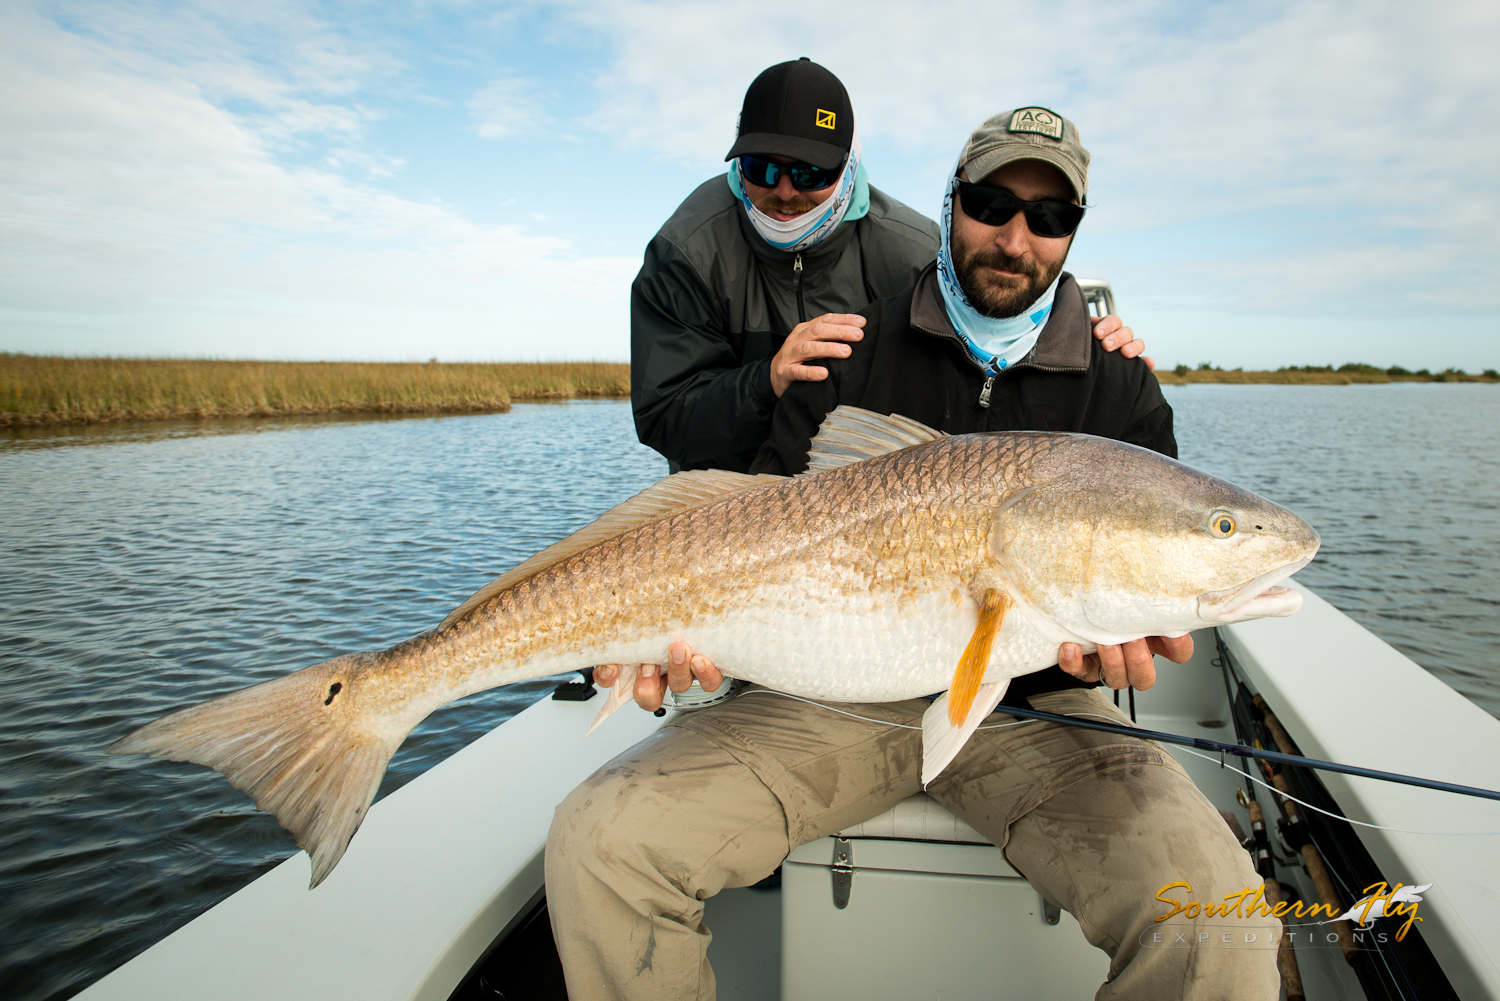 Fishing guides in Louisiana - Southern Fly Expeditions and Captain Brandon Keck of New Orleans